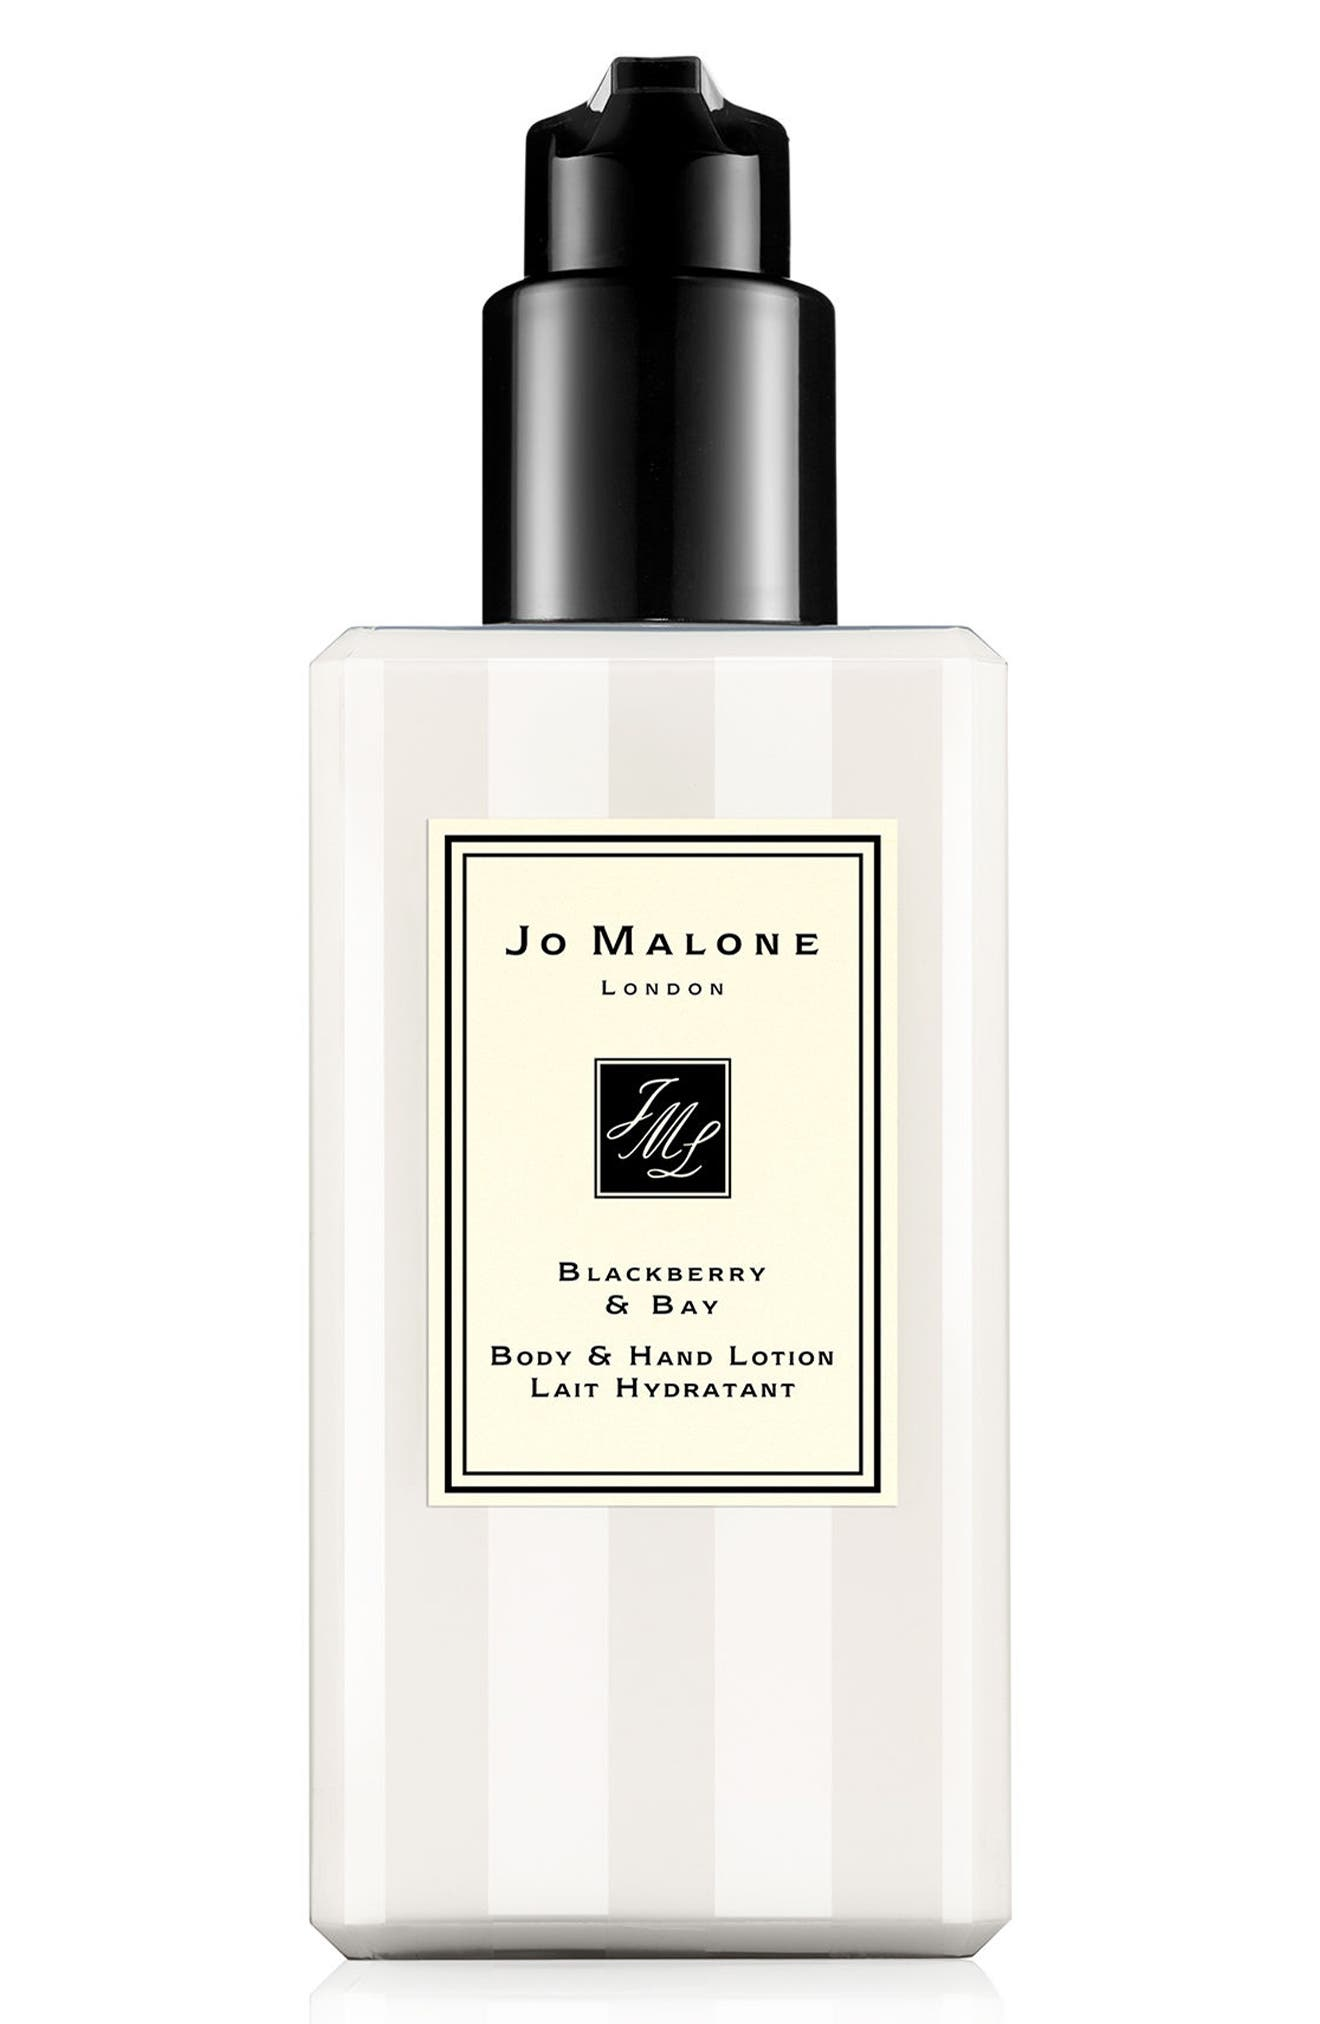 Jo Malone London™ Blackberry & Bay Body & Hand Lotion